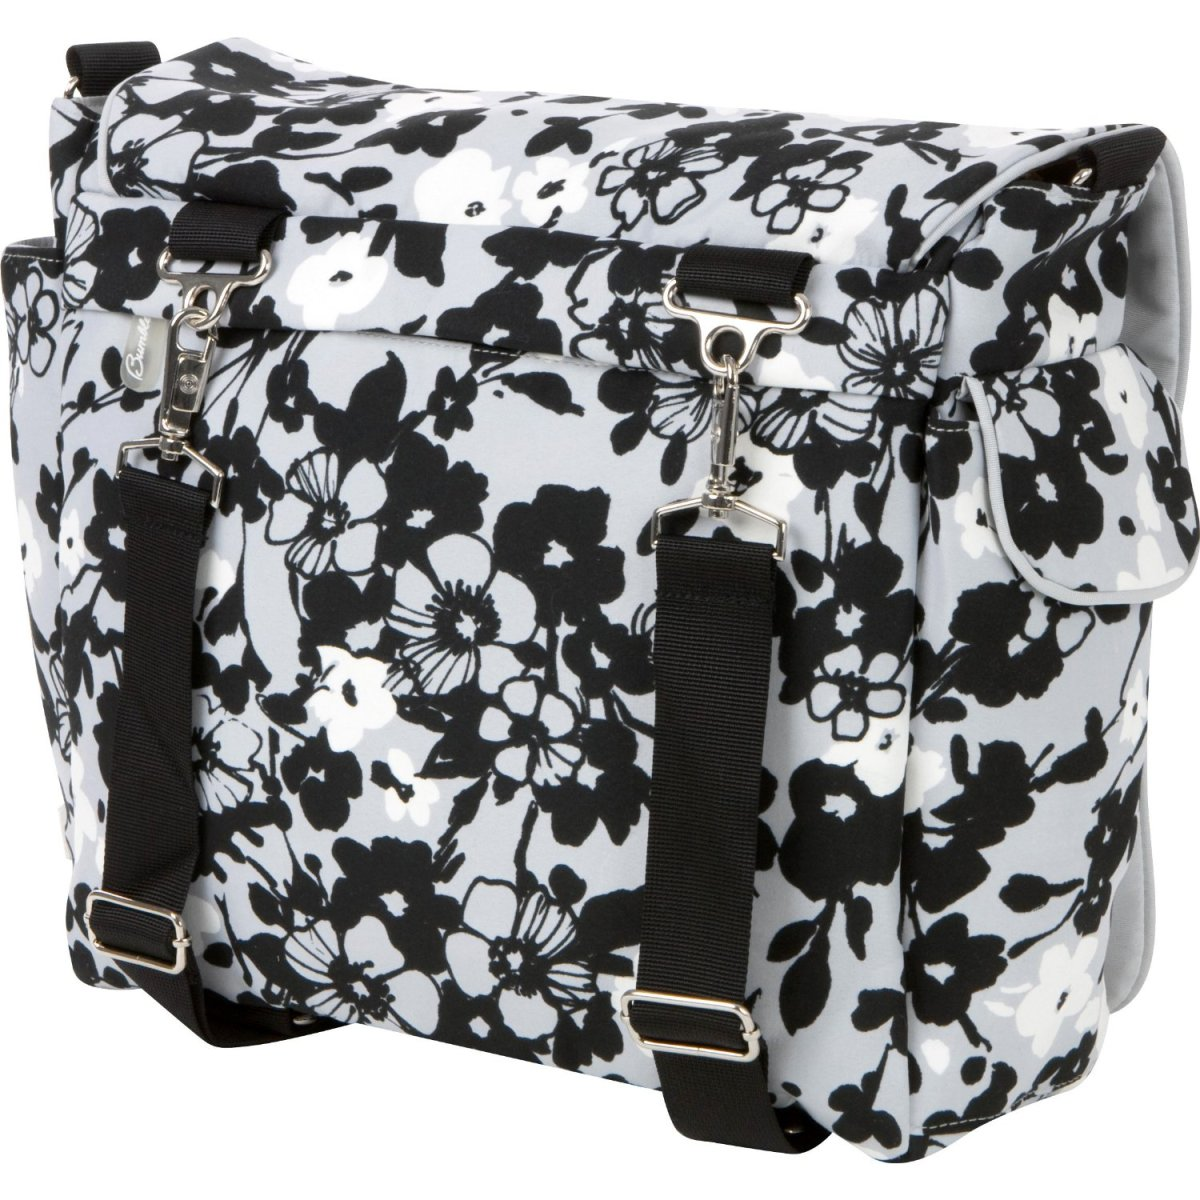 Bumble Bags Diaper bag.